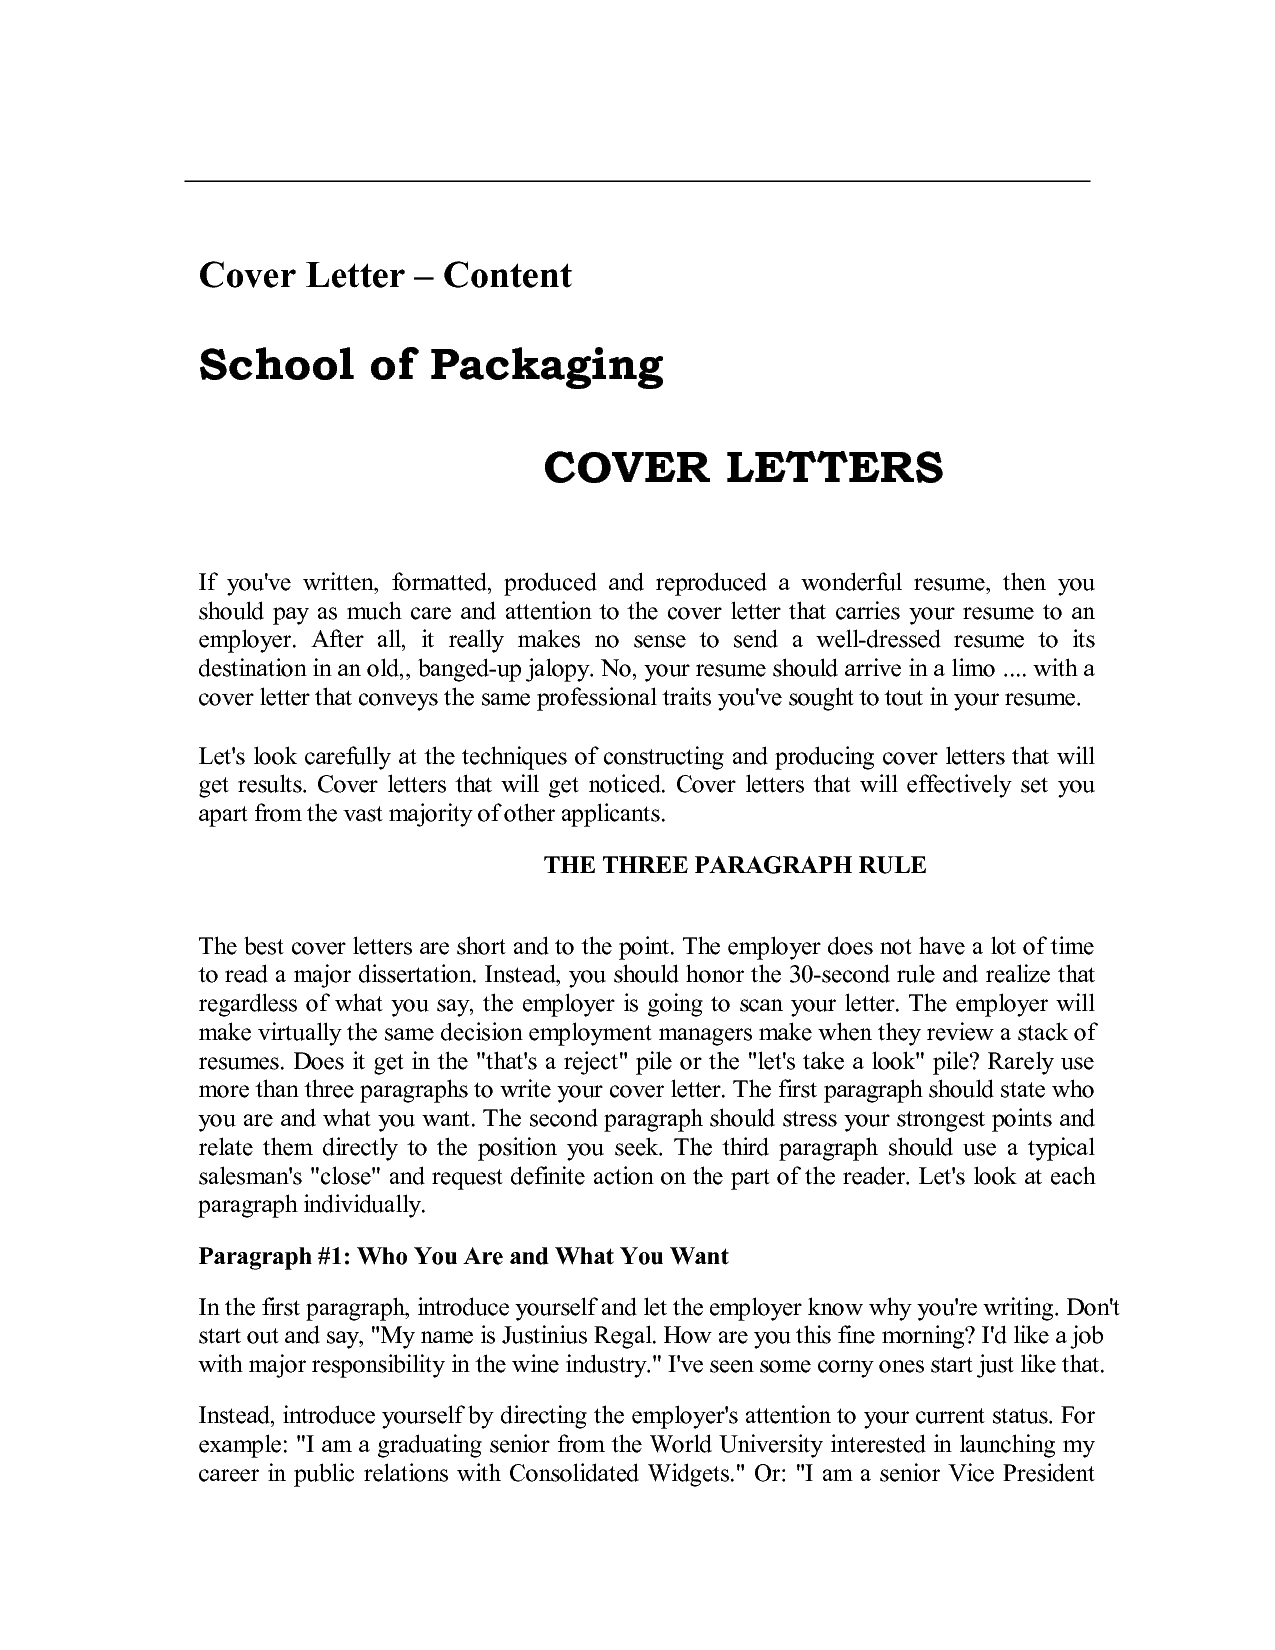 Cover letters pdf with resumecover letter for resume cover letter cover letters pdf with resumecover letter for resume cover letter examples altavistaventures Gallery